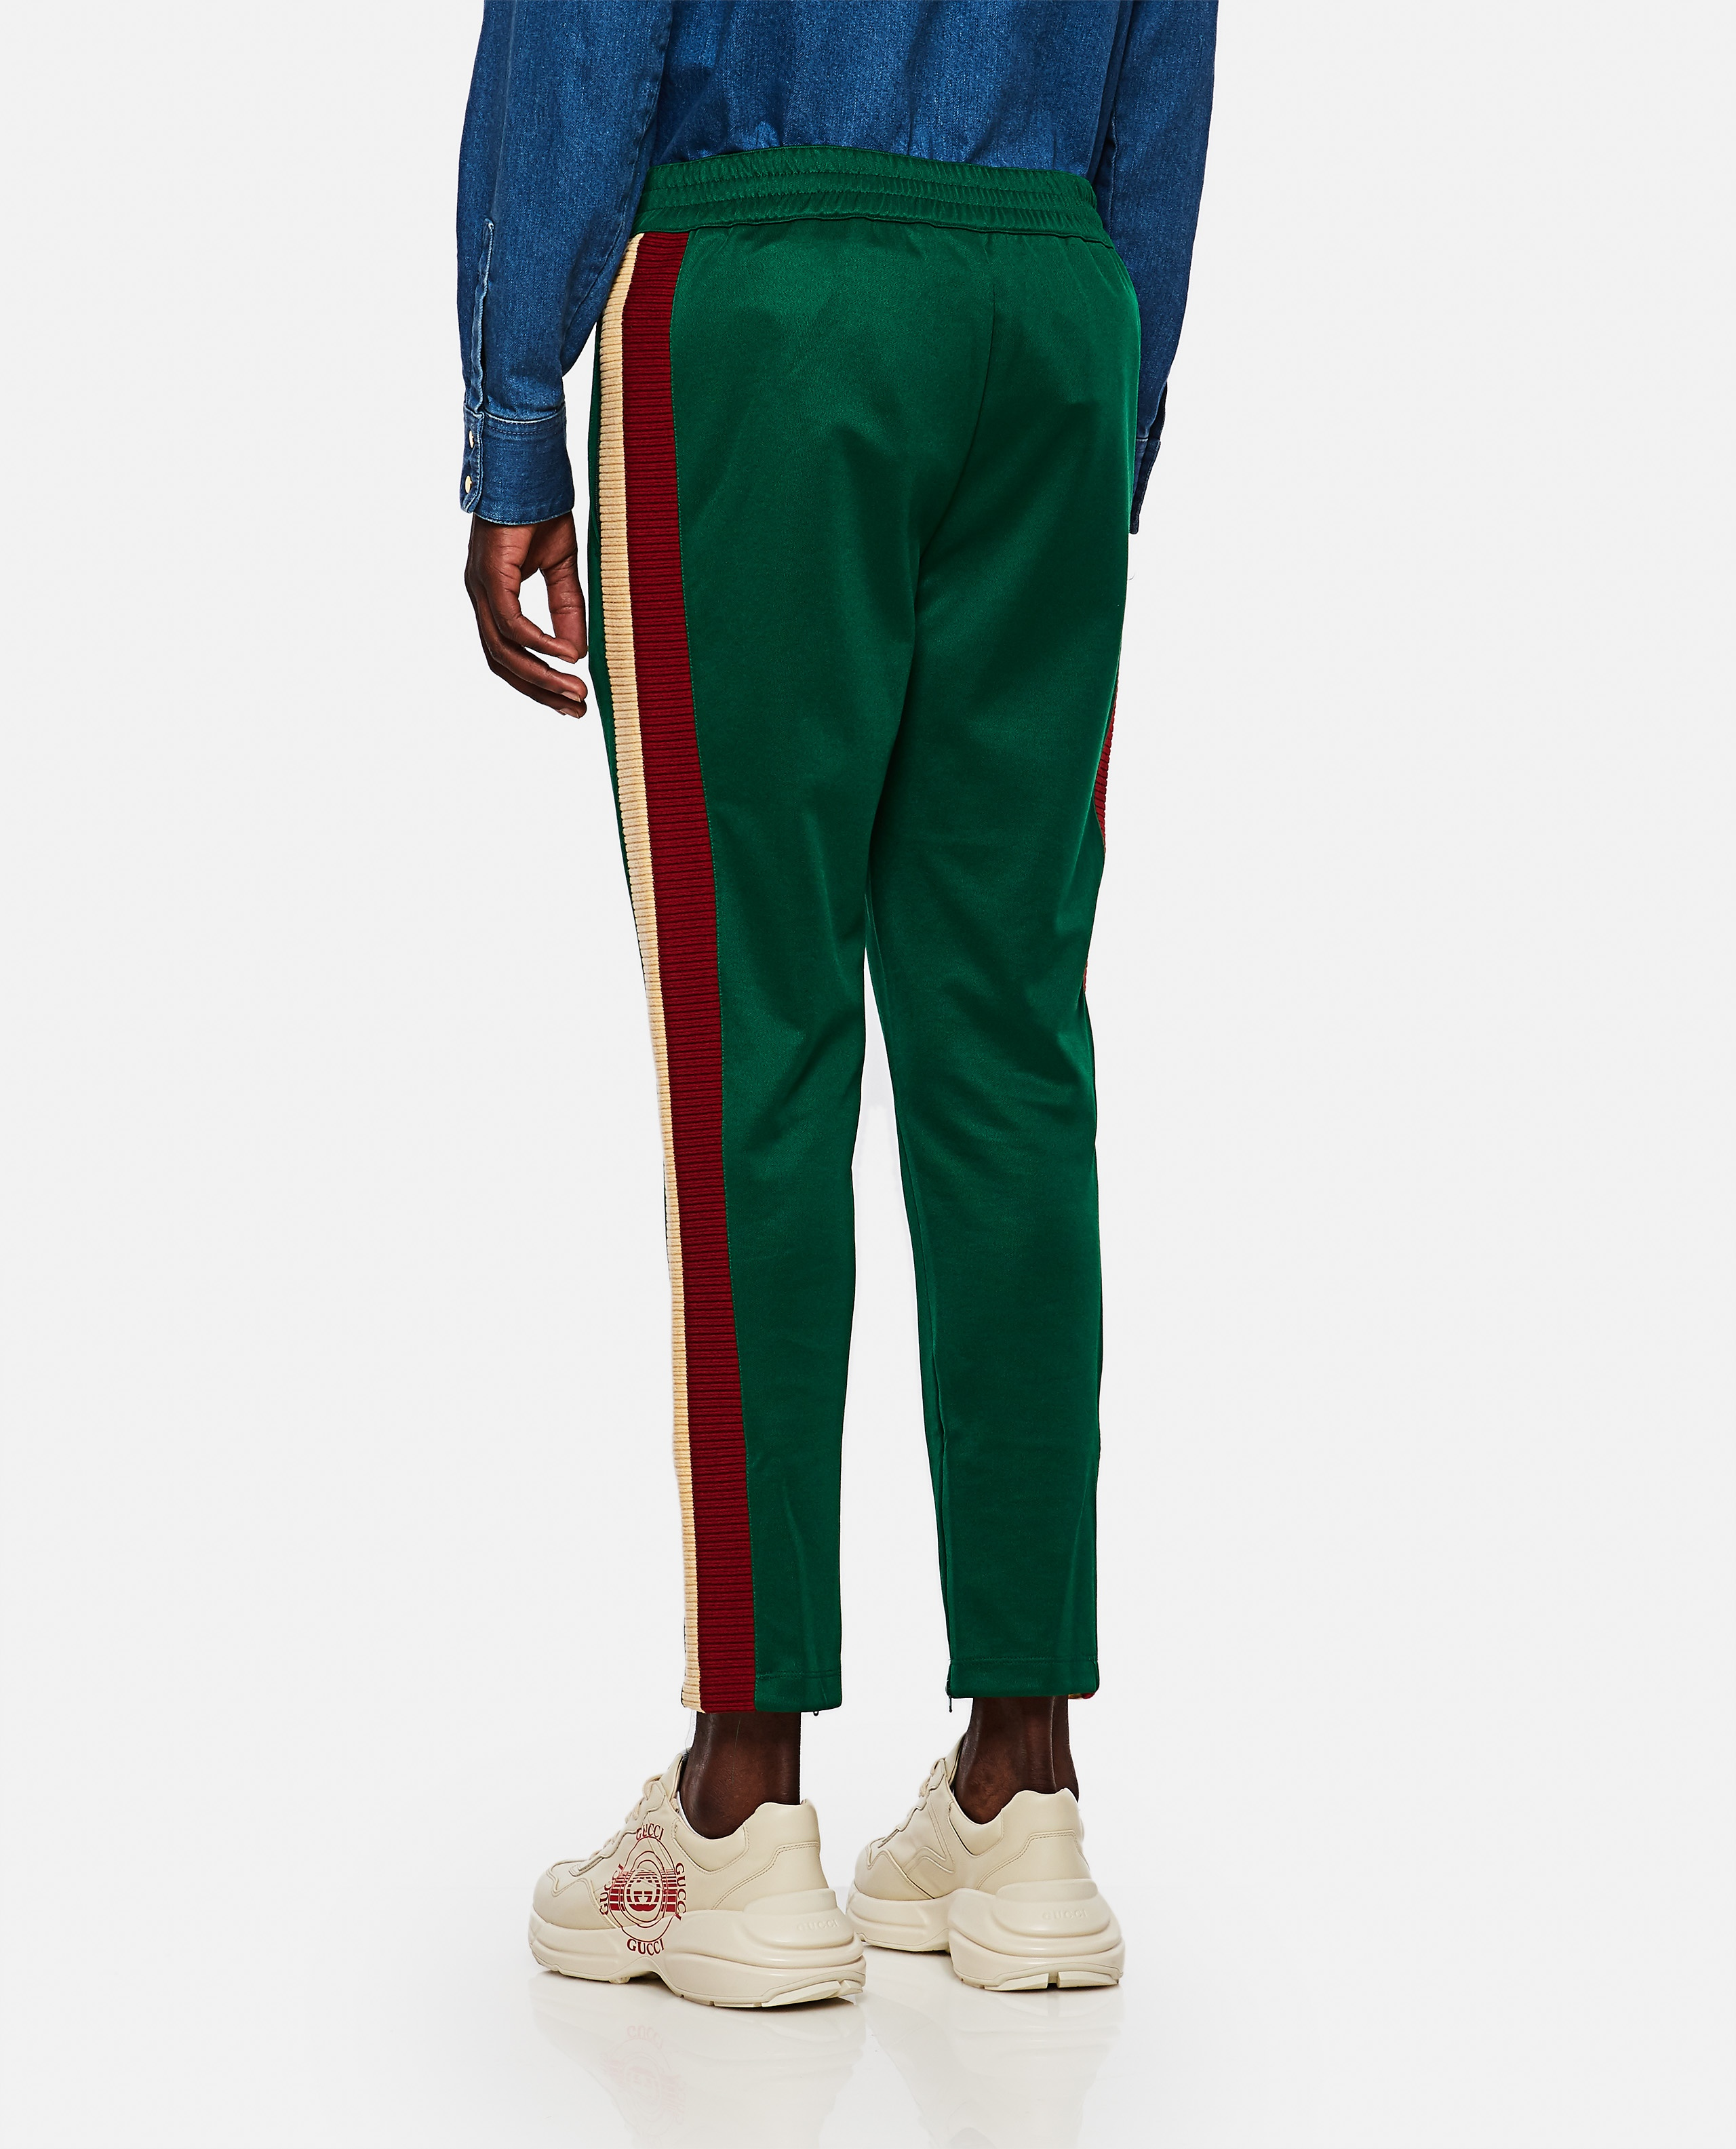 Jogging trousers in technical jersey Men Gucci 000267620039483 3